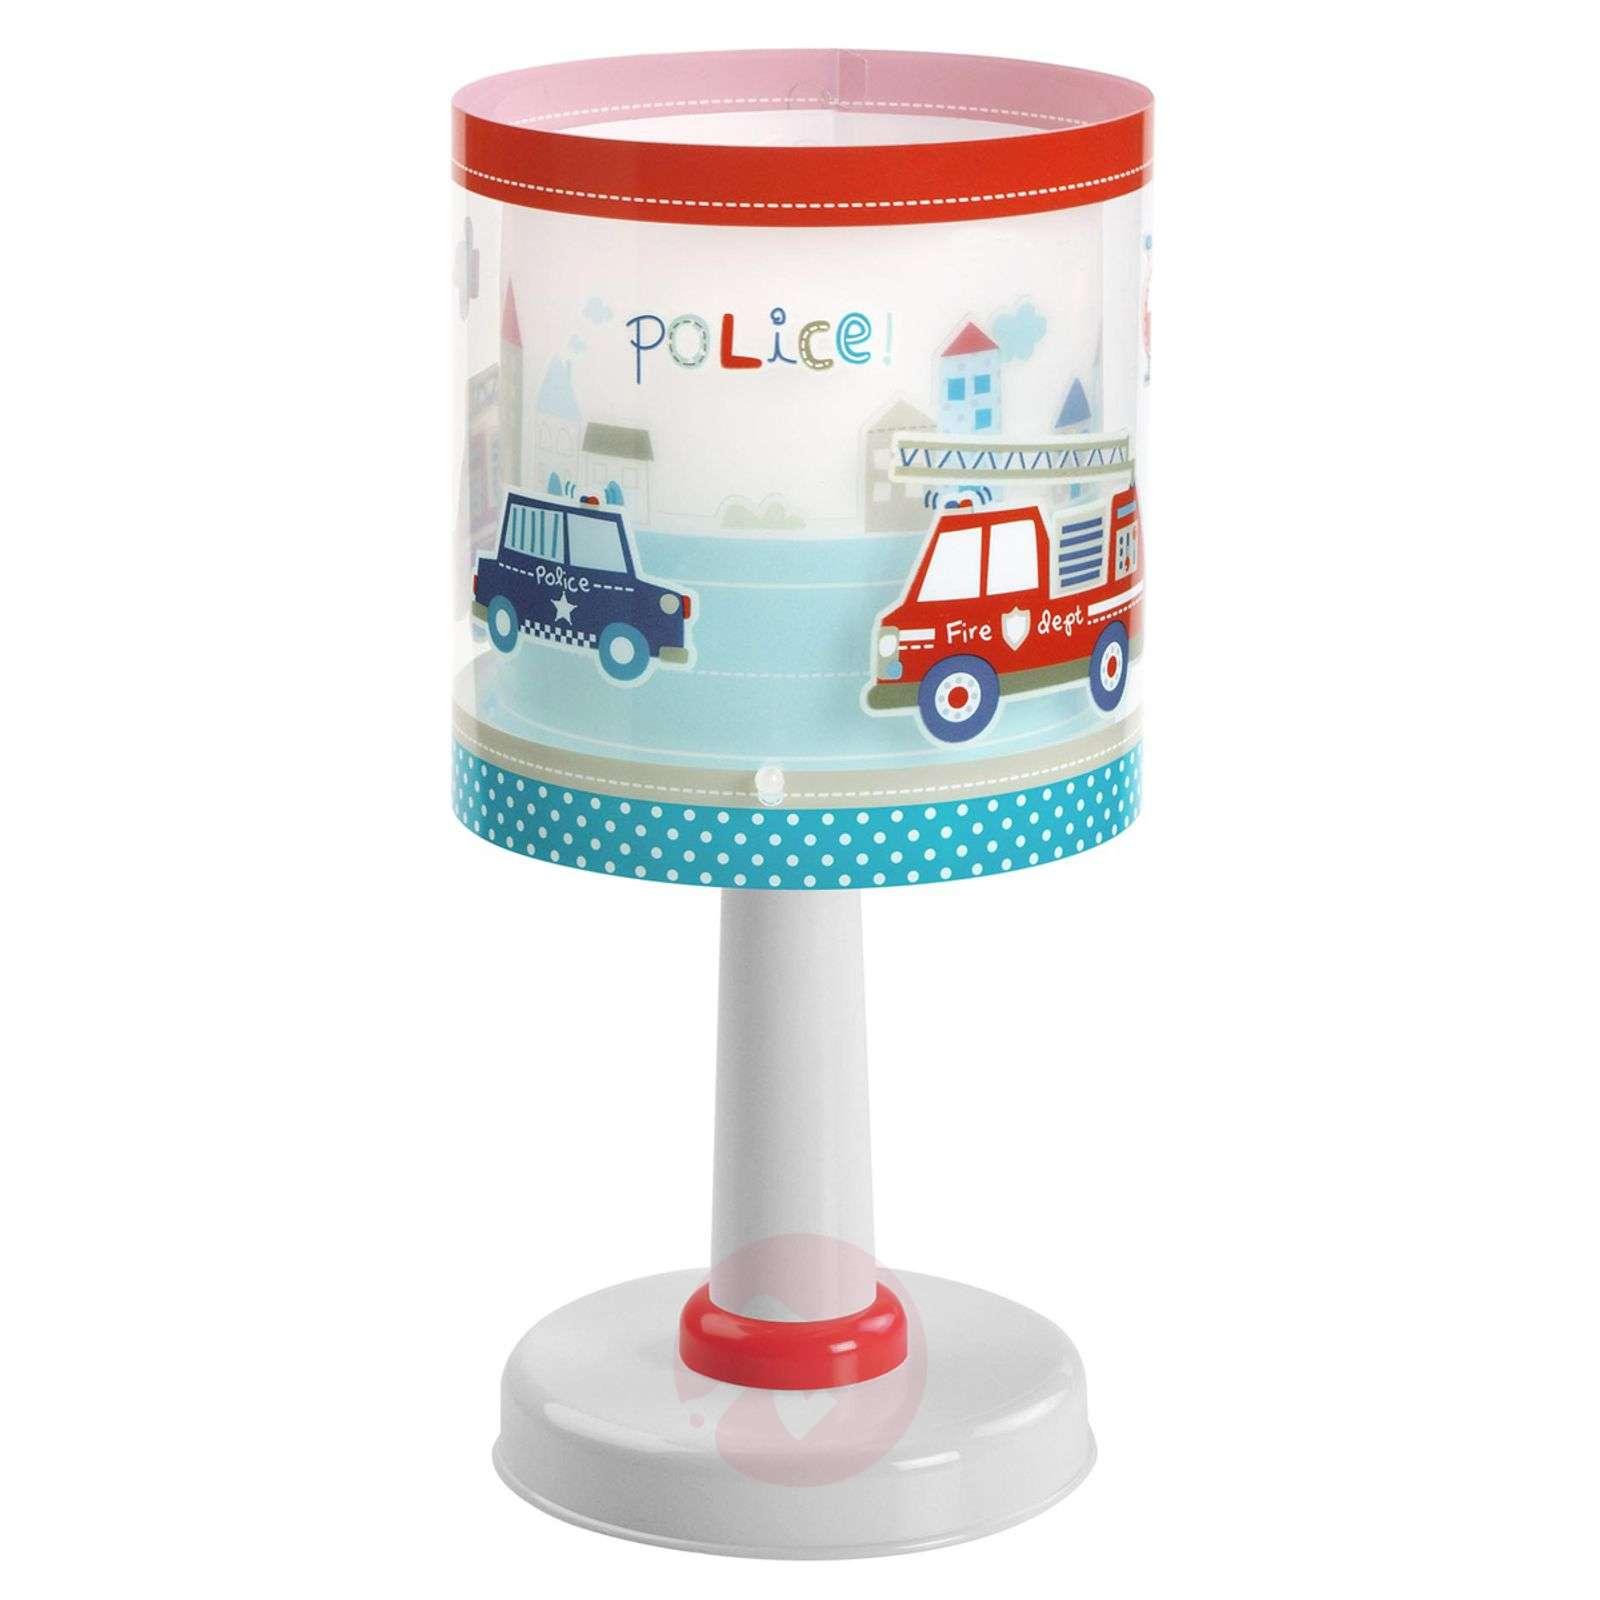 Childrens table lamp Police with motif-2507370-01